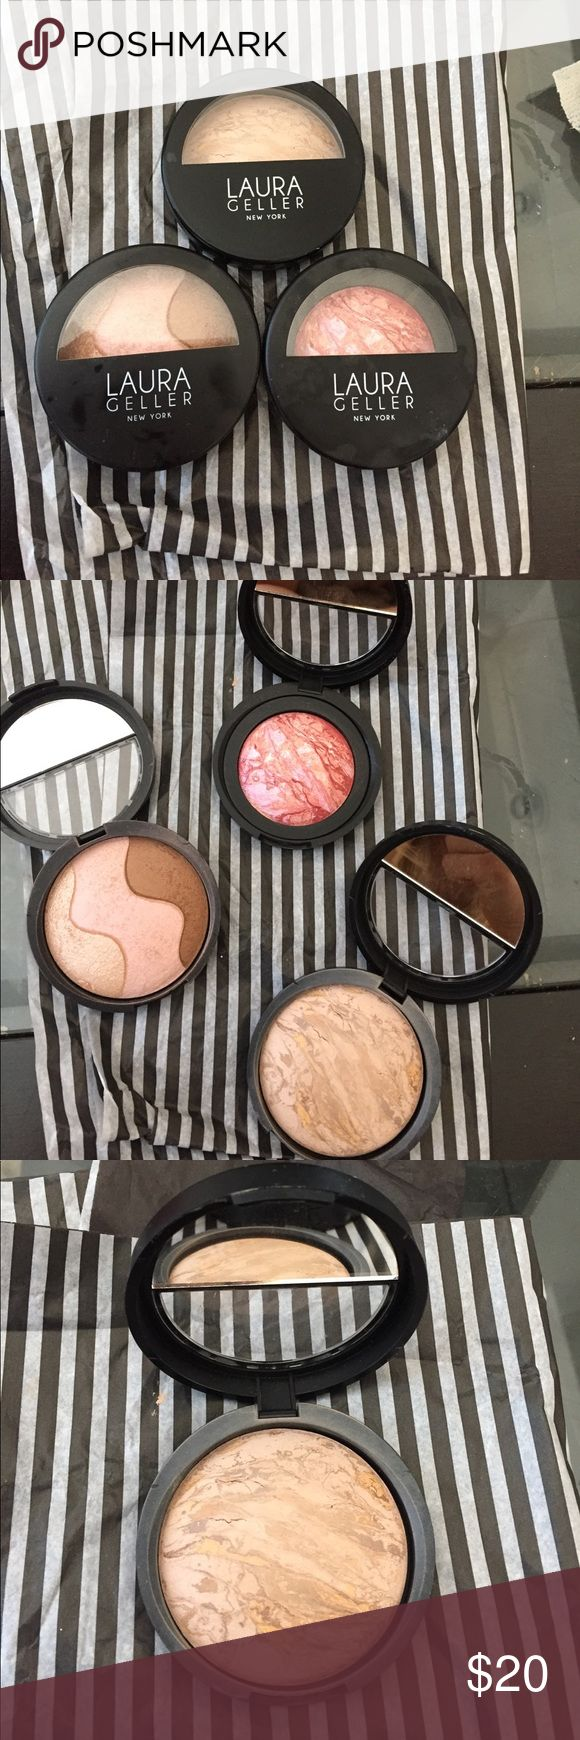 Laura Geller Baked Makeup Set ✨ Laura Geller Baked Makeup Trio Set ✨ included: 1. Baked Balance N Brighten Color Correcting Foundation in shade Medium. 2. Baked EyeShadow Sensation Trio in Tiramisu. 3. Baked Blush N Brighten in shade Tropic Hues. All compacts come with half mirror inside. All have been swatched but barely used. laura geller Accessories